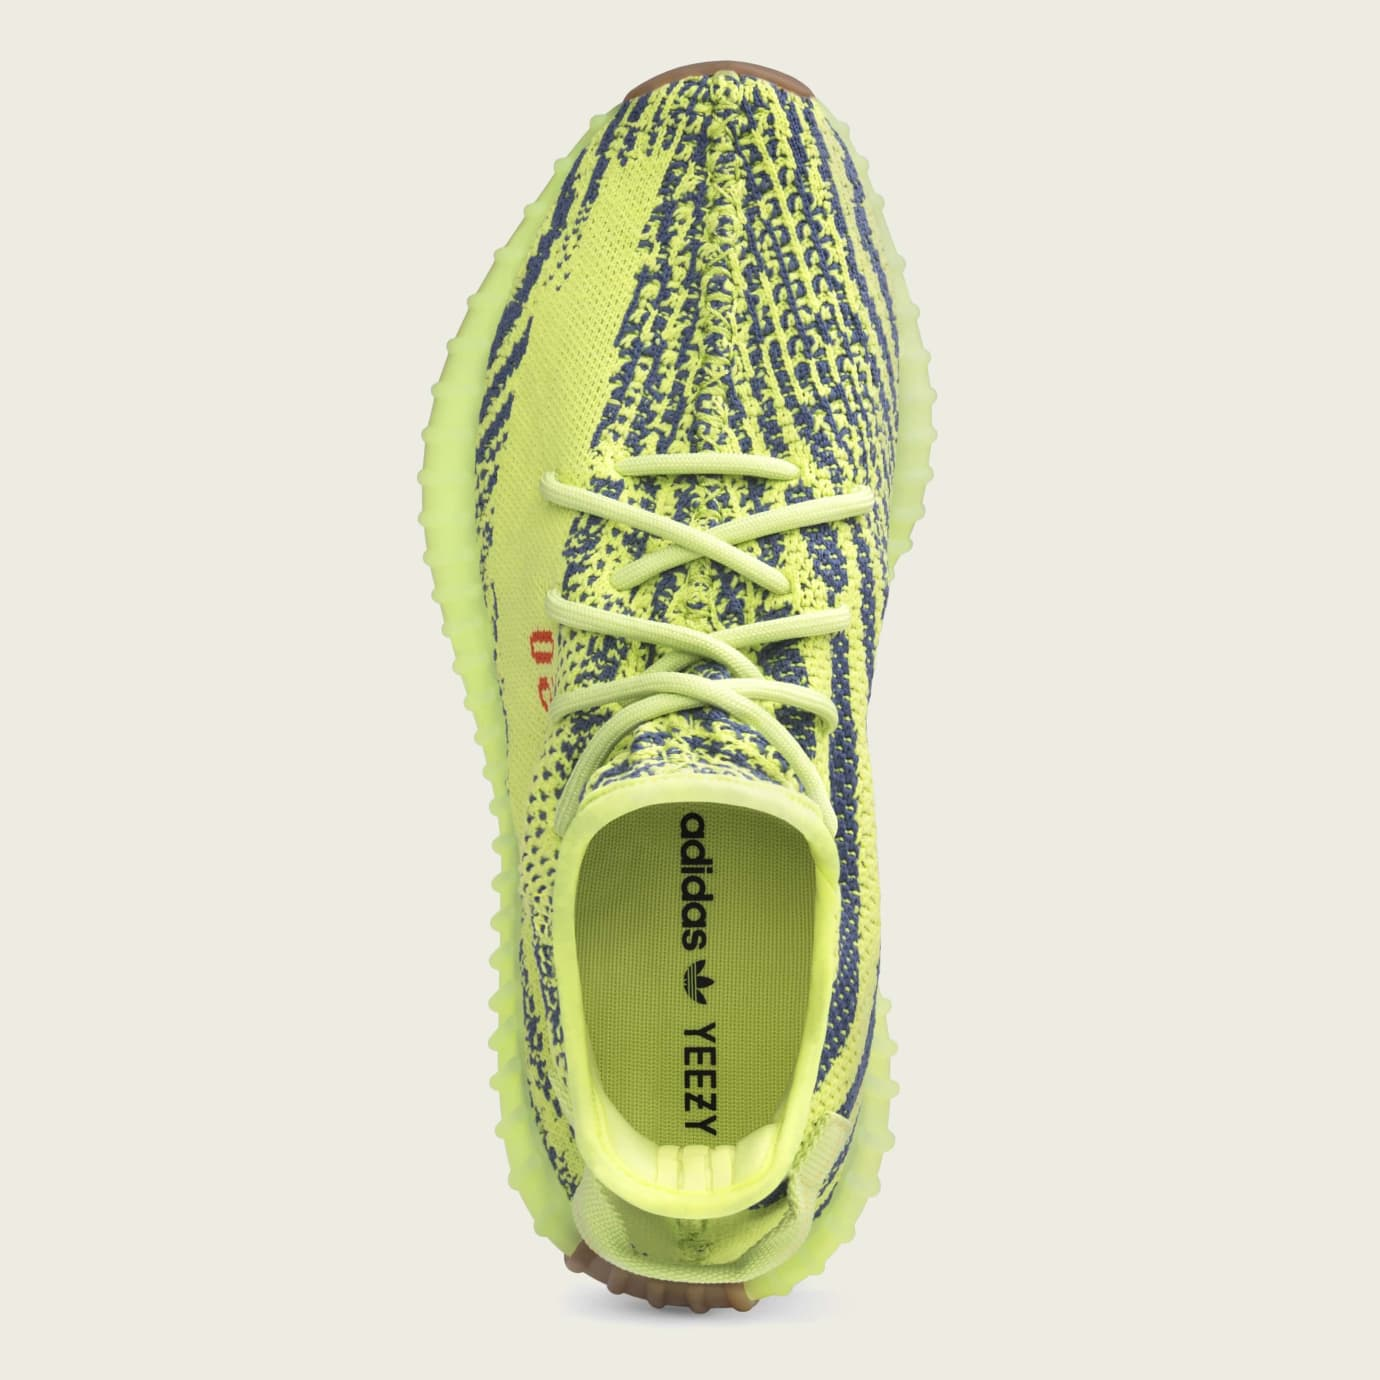 ebea5ddfabd4e Image via Adidas Adidas Yeezy Boost 350 V2  Semi Frozen Yellow  B37572 (Top)